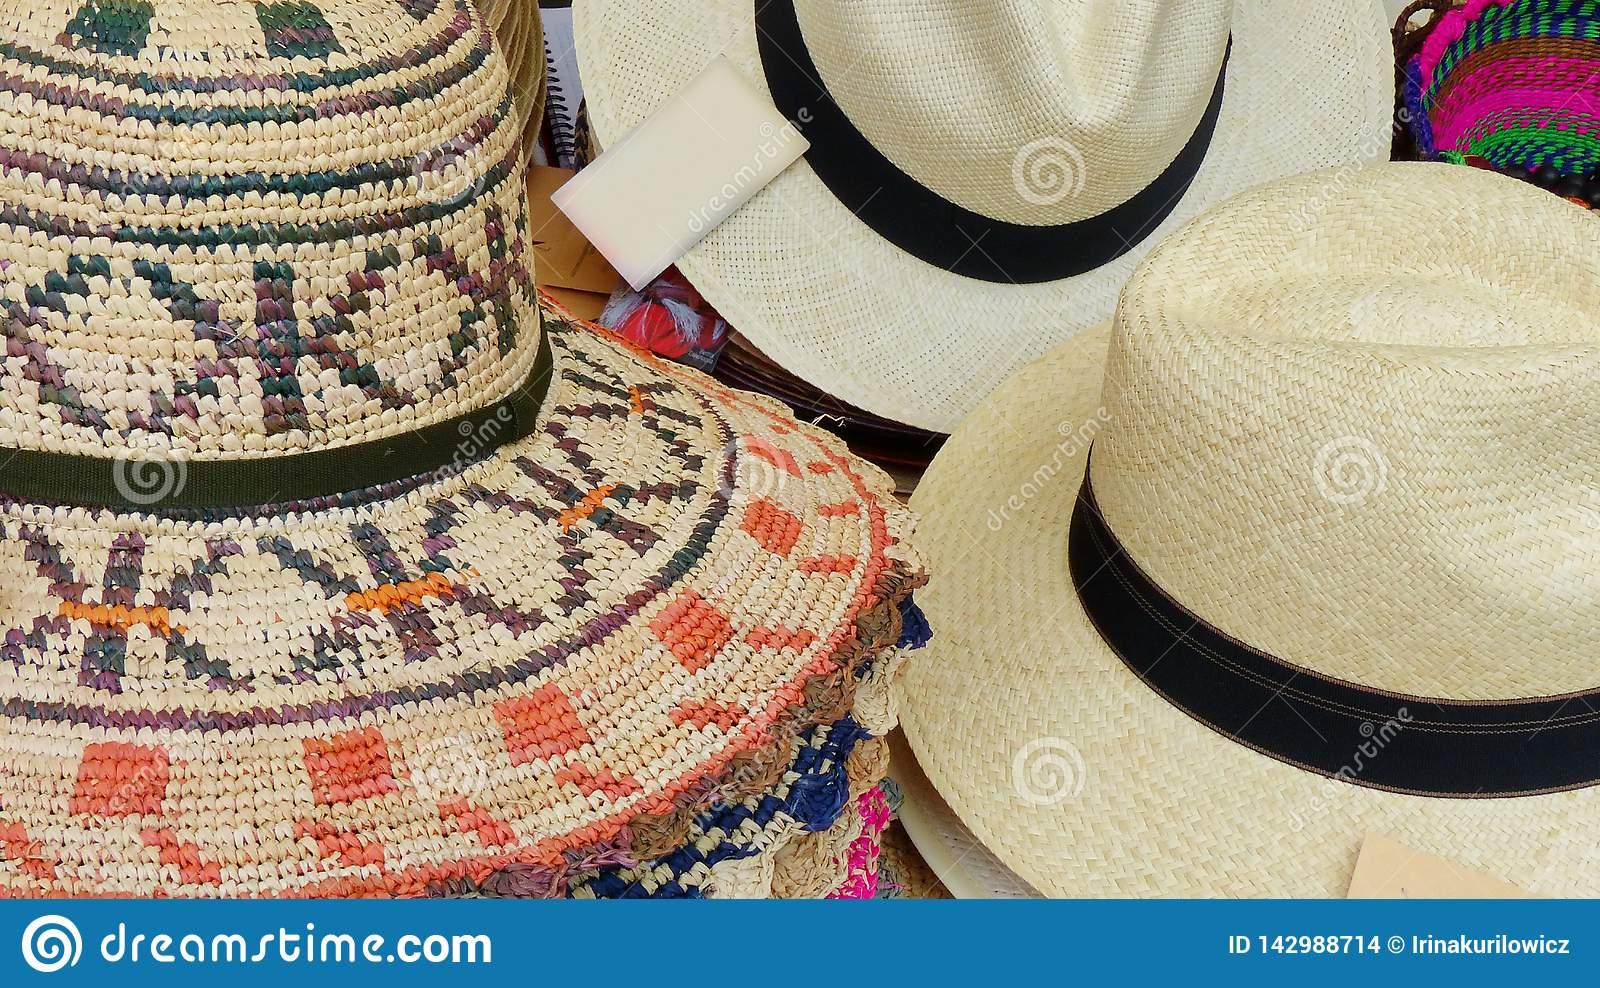 995478fcc8f1f Colorful Handmade Panama Hats or Paja Toquilla hats or sombreros made with  straw at the traditional outdoor market in Cuenca, Ecuador.